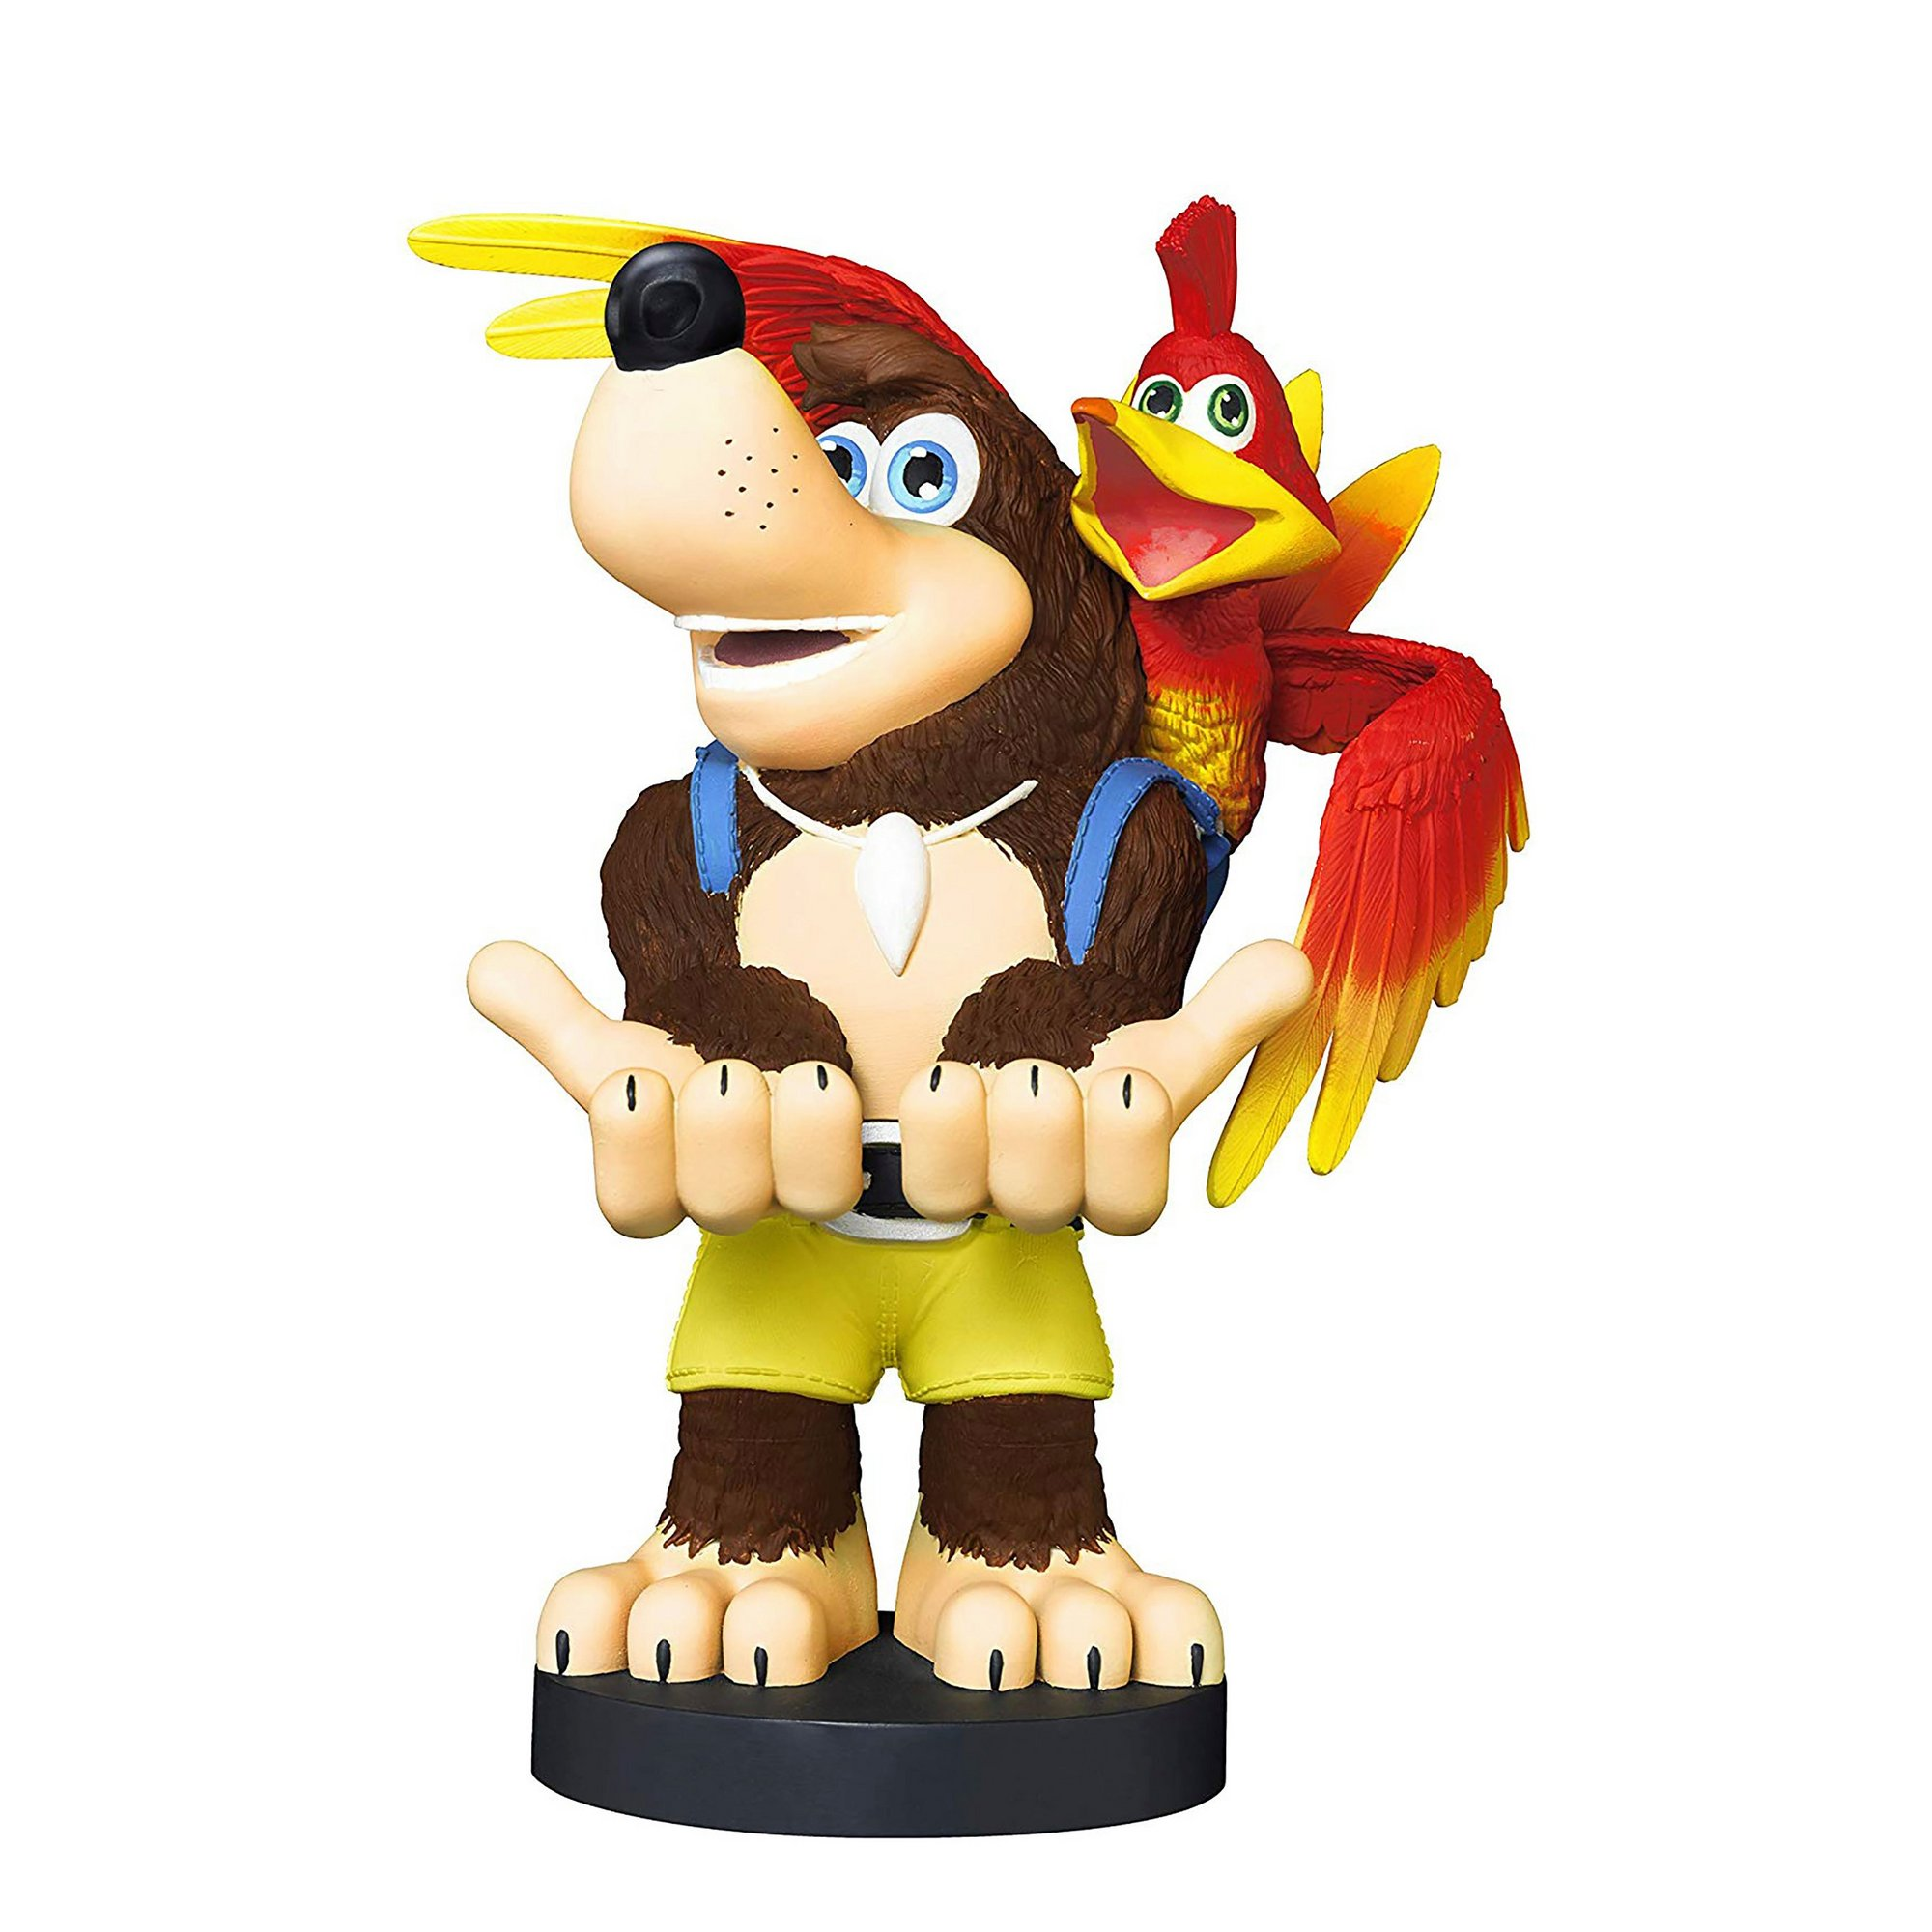 Image of Banjo Kazooie Cable Guy